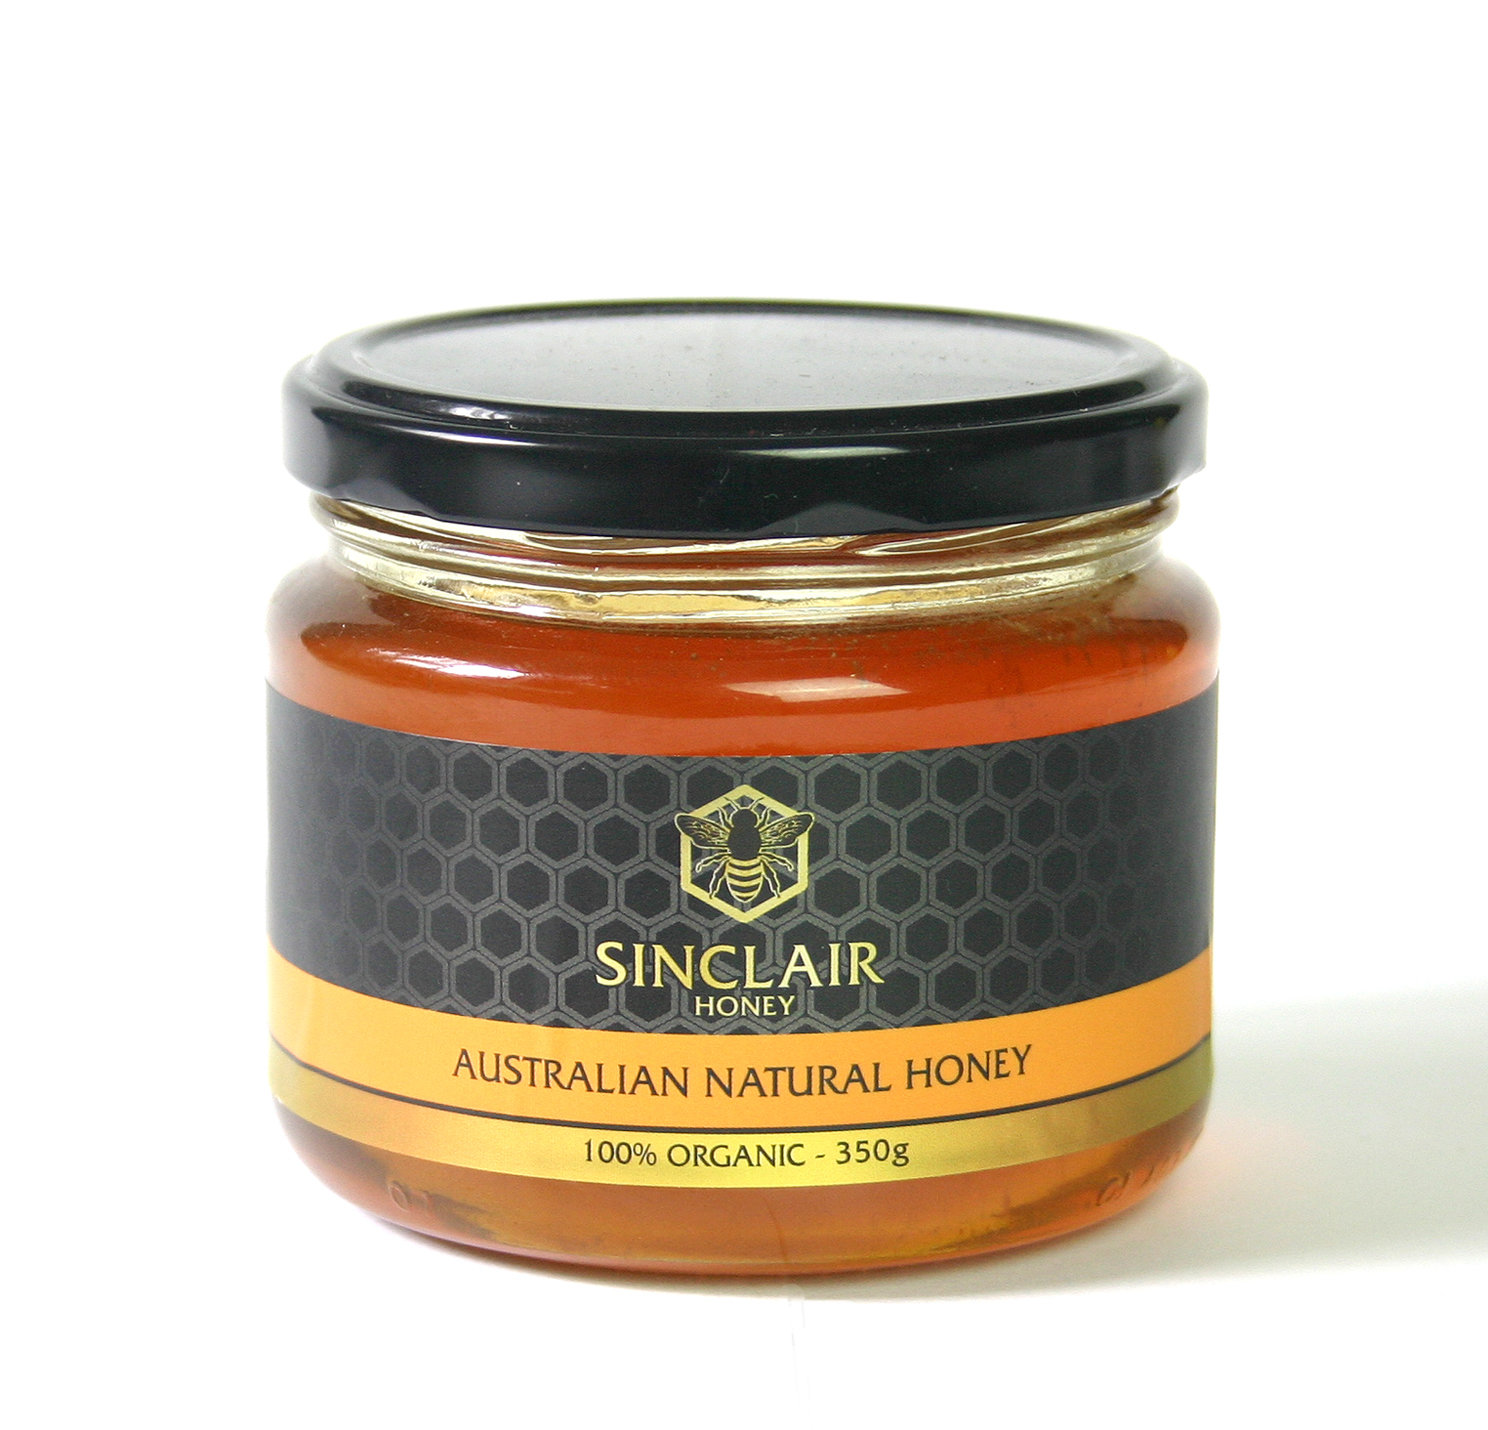 Australian Natural Honey 100% Organic